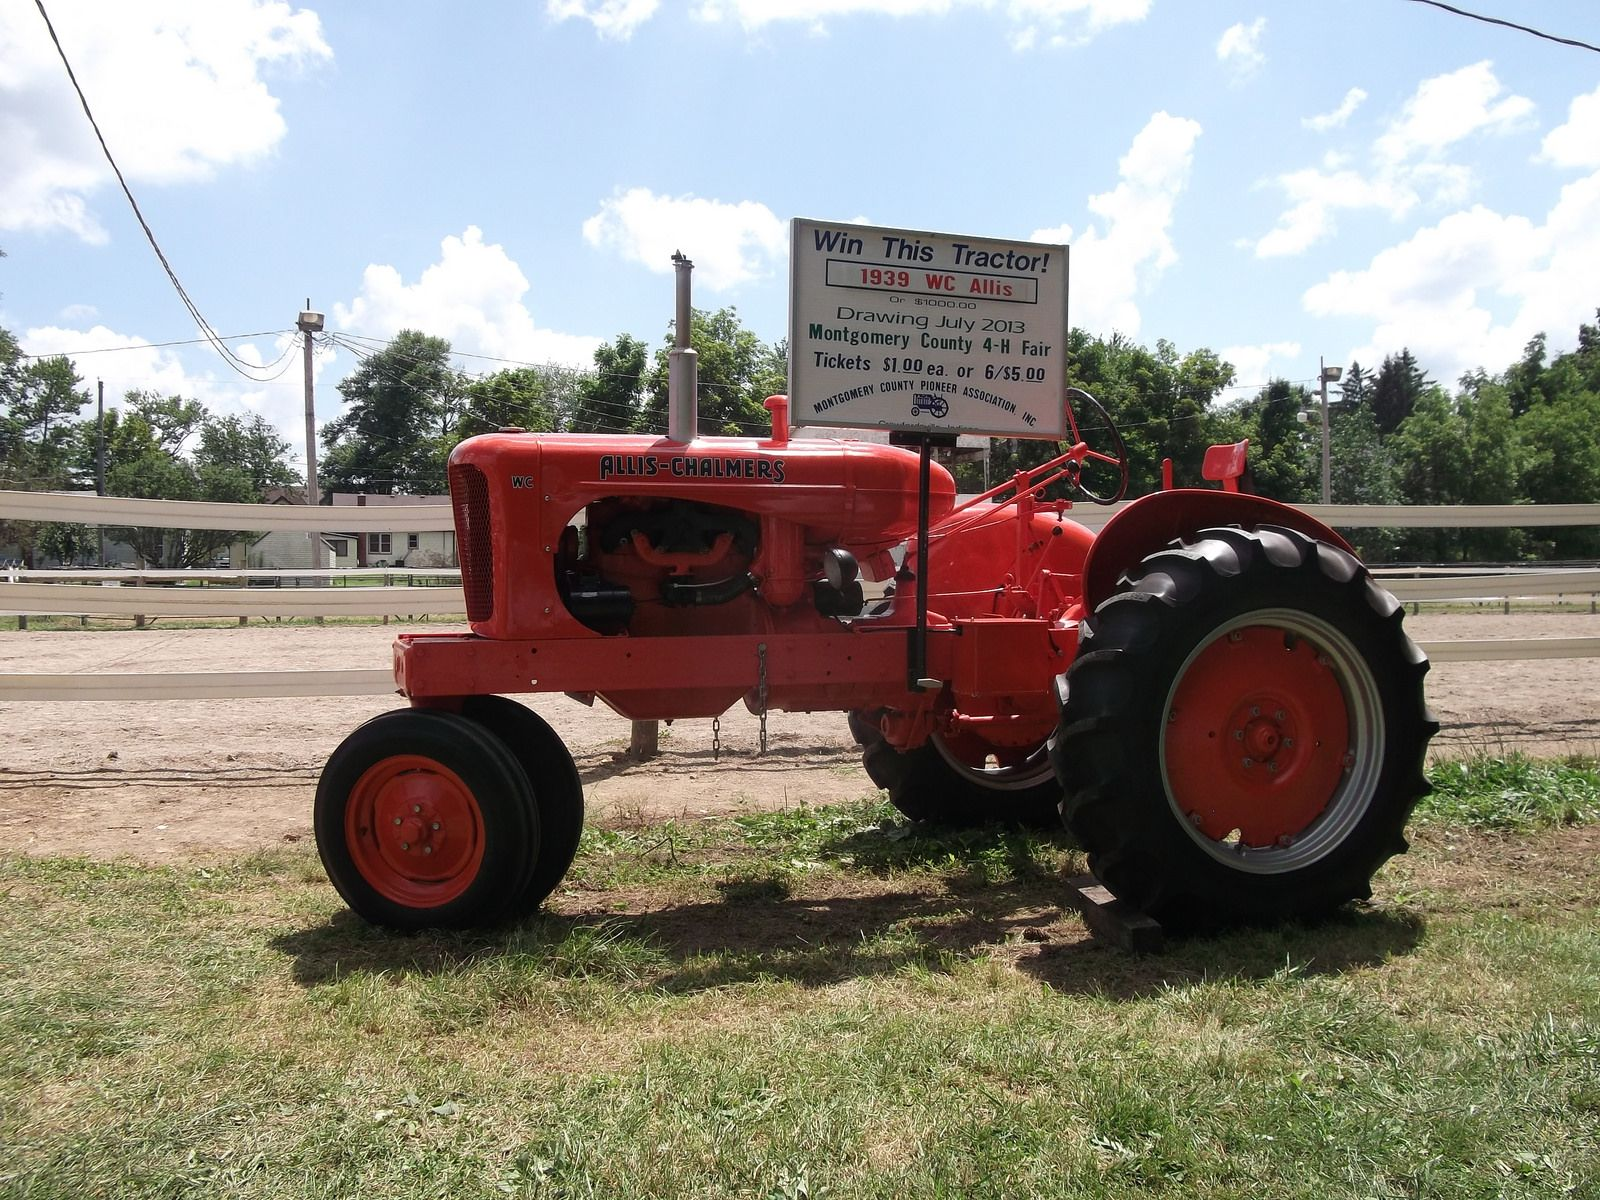 1939 Allis Chalmers WC tractor | by cjp02 4h Fair, July 14th, Metal Art